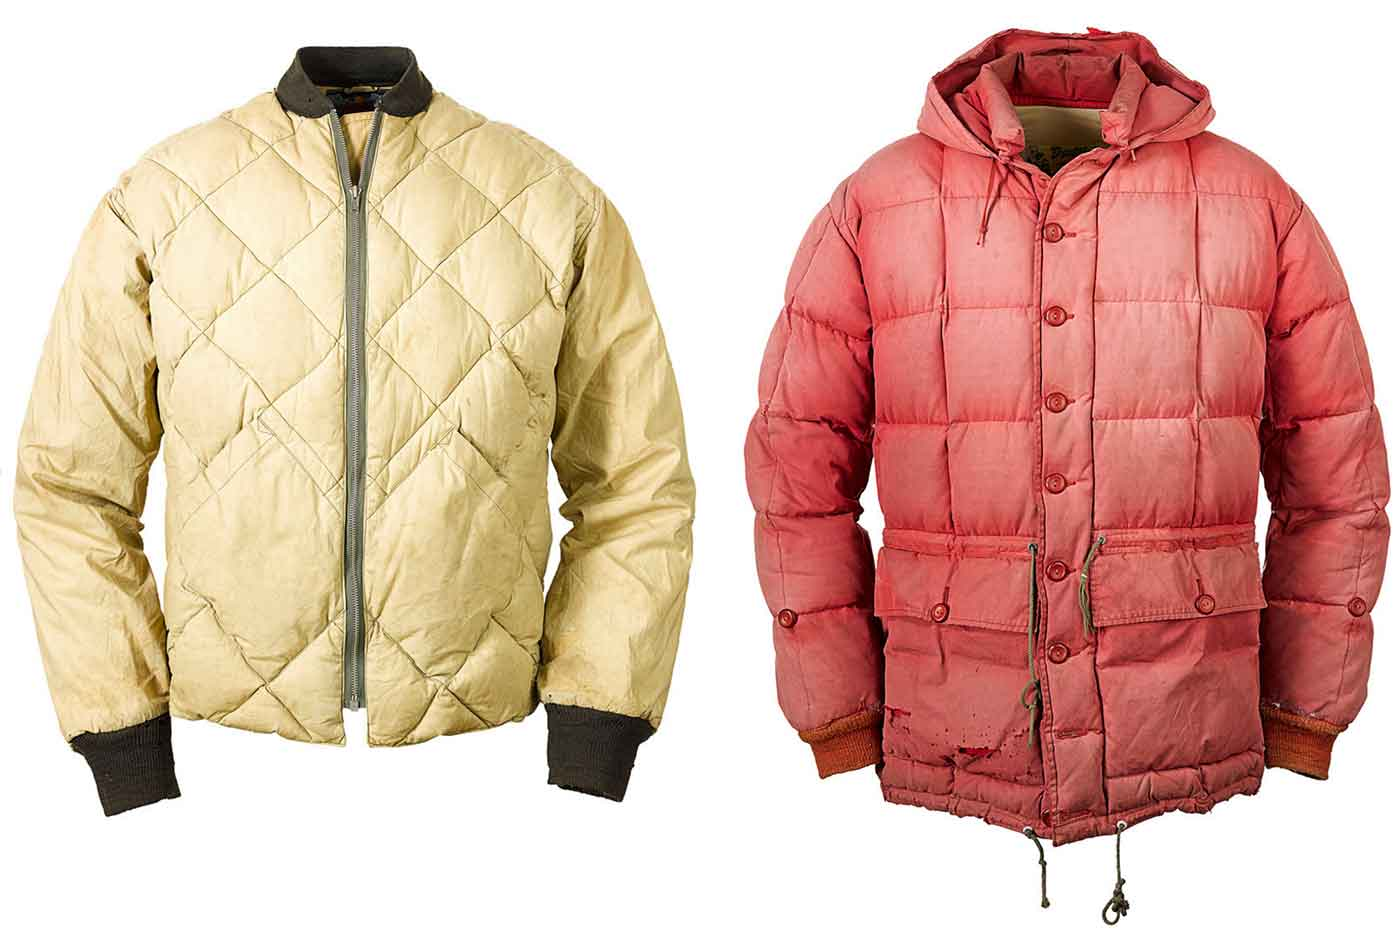 ca0b1949c1578 Eddie Bauer Goes 'Retro-Technical' With Originals Line | GearJunkie